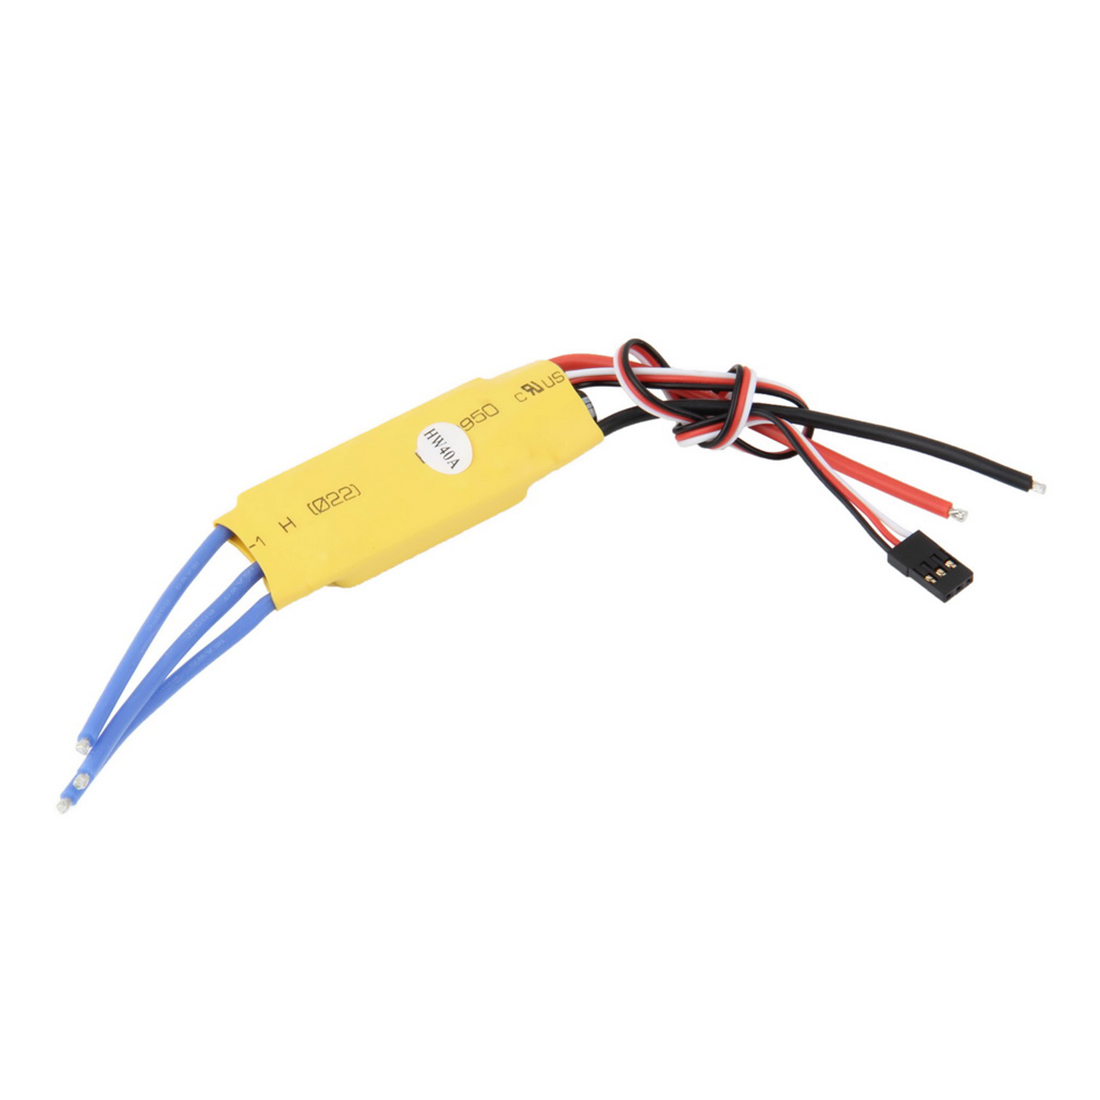 HOBBYINRC New Lan Yu 40A ESC for Brushless Motor Speed Controller Pro RC Helicopter